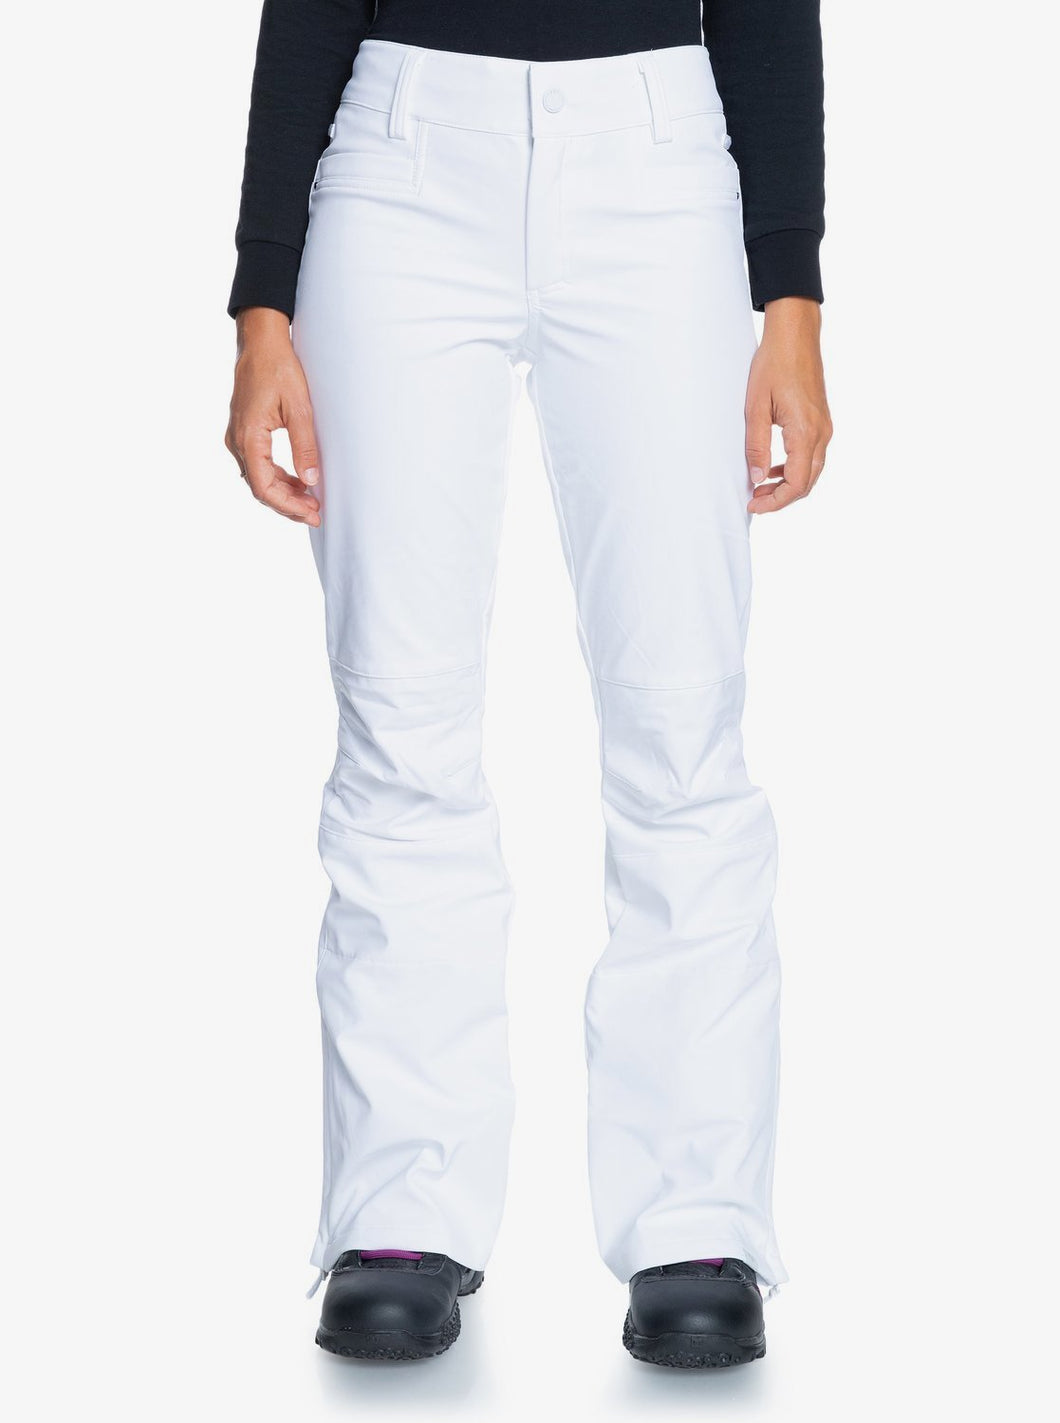 Roxy Women's Creek Snow Pant White Front View